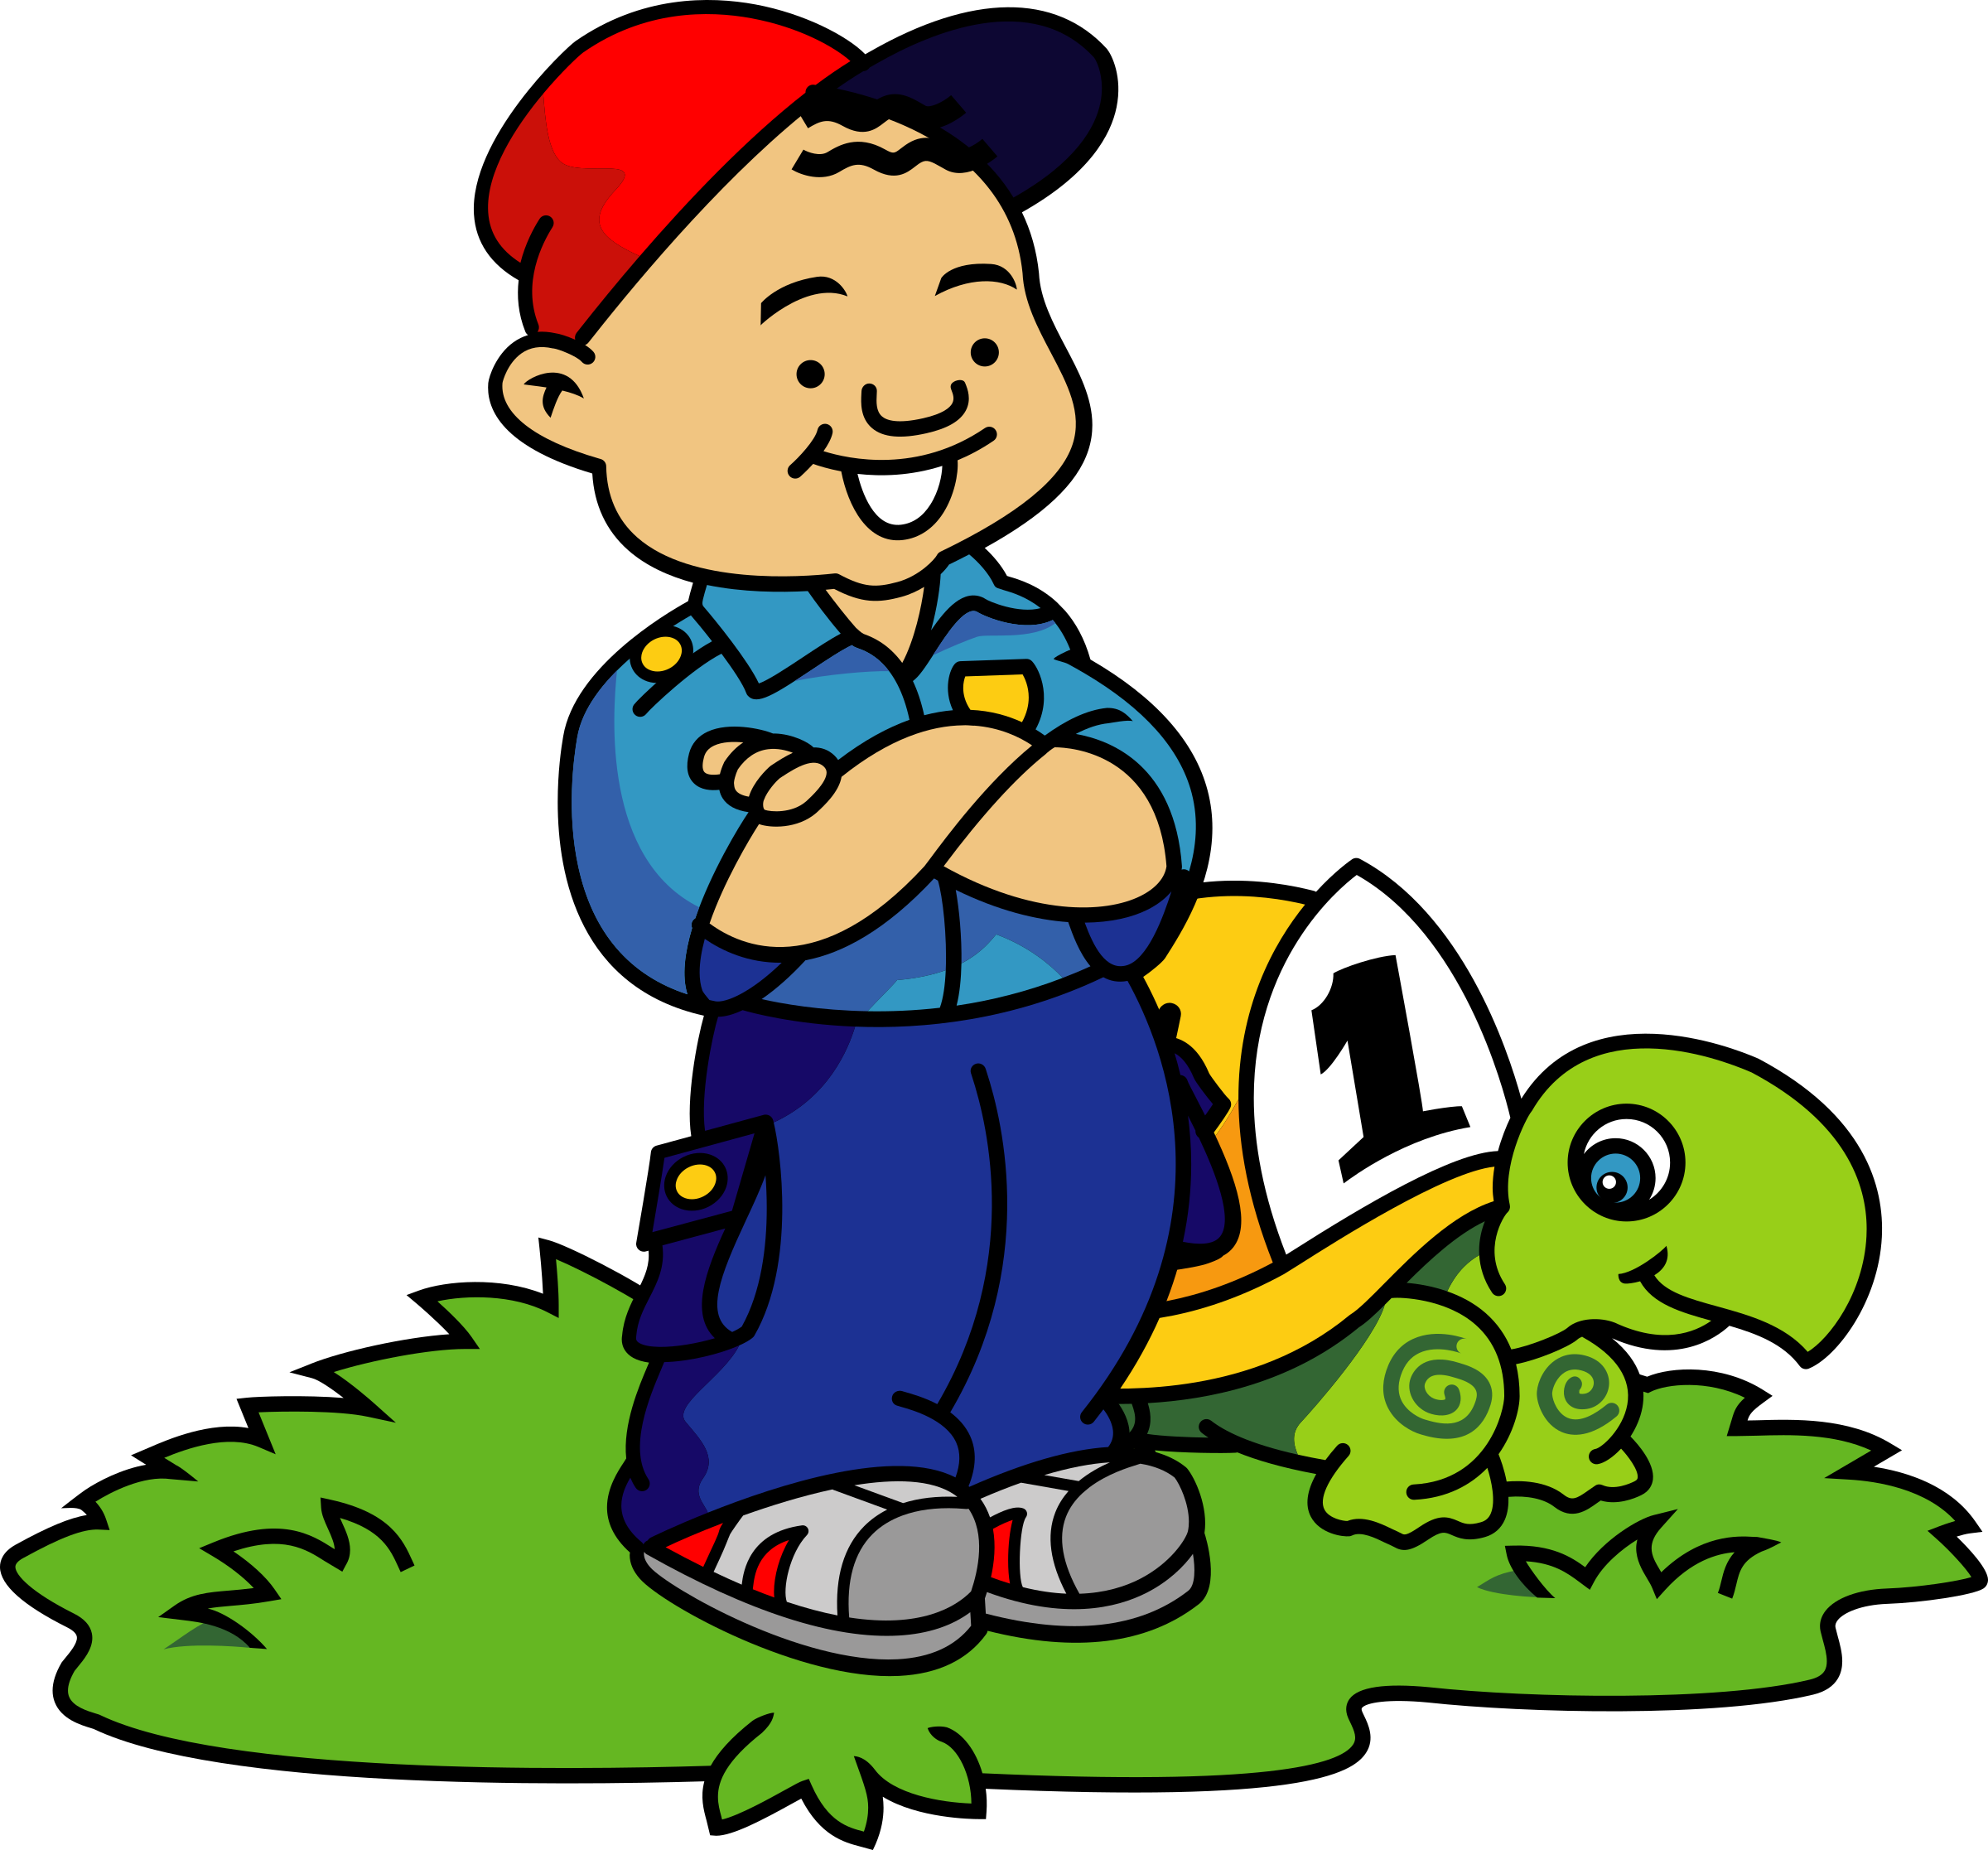 Boy and turtle big. Government clipart kid